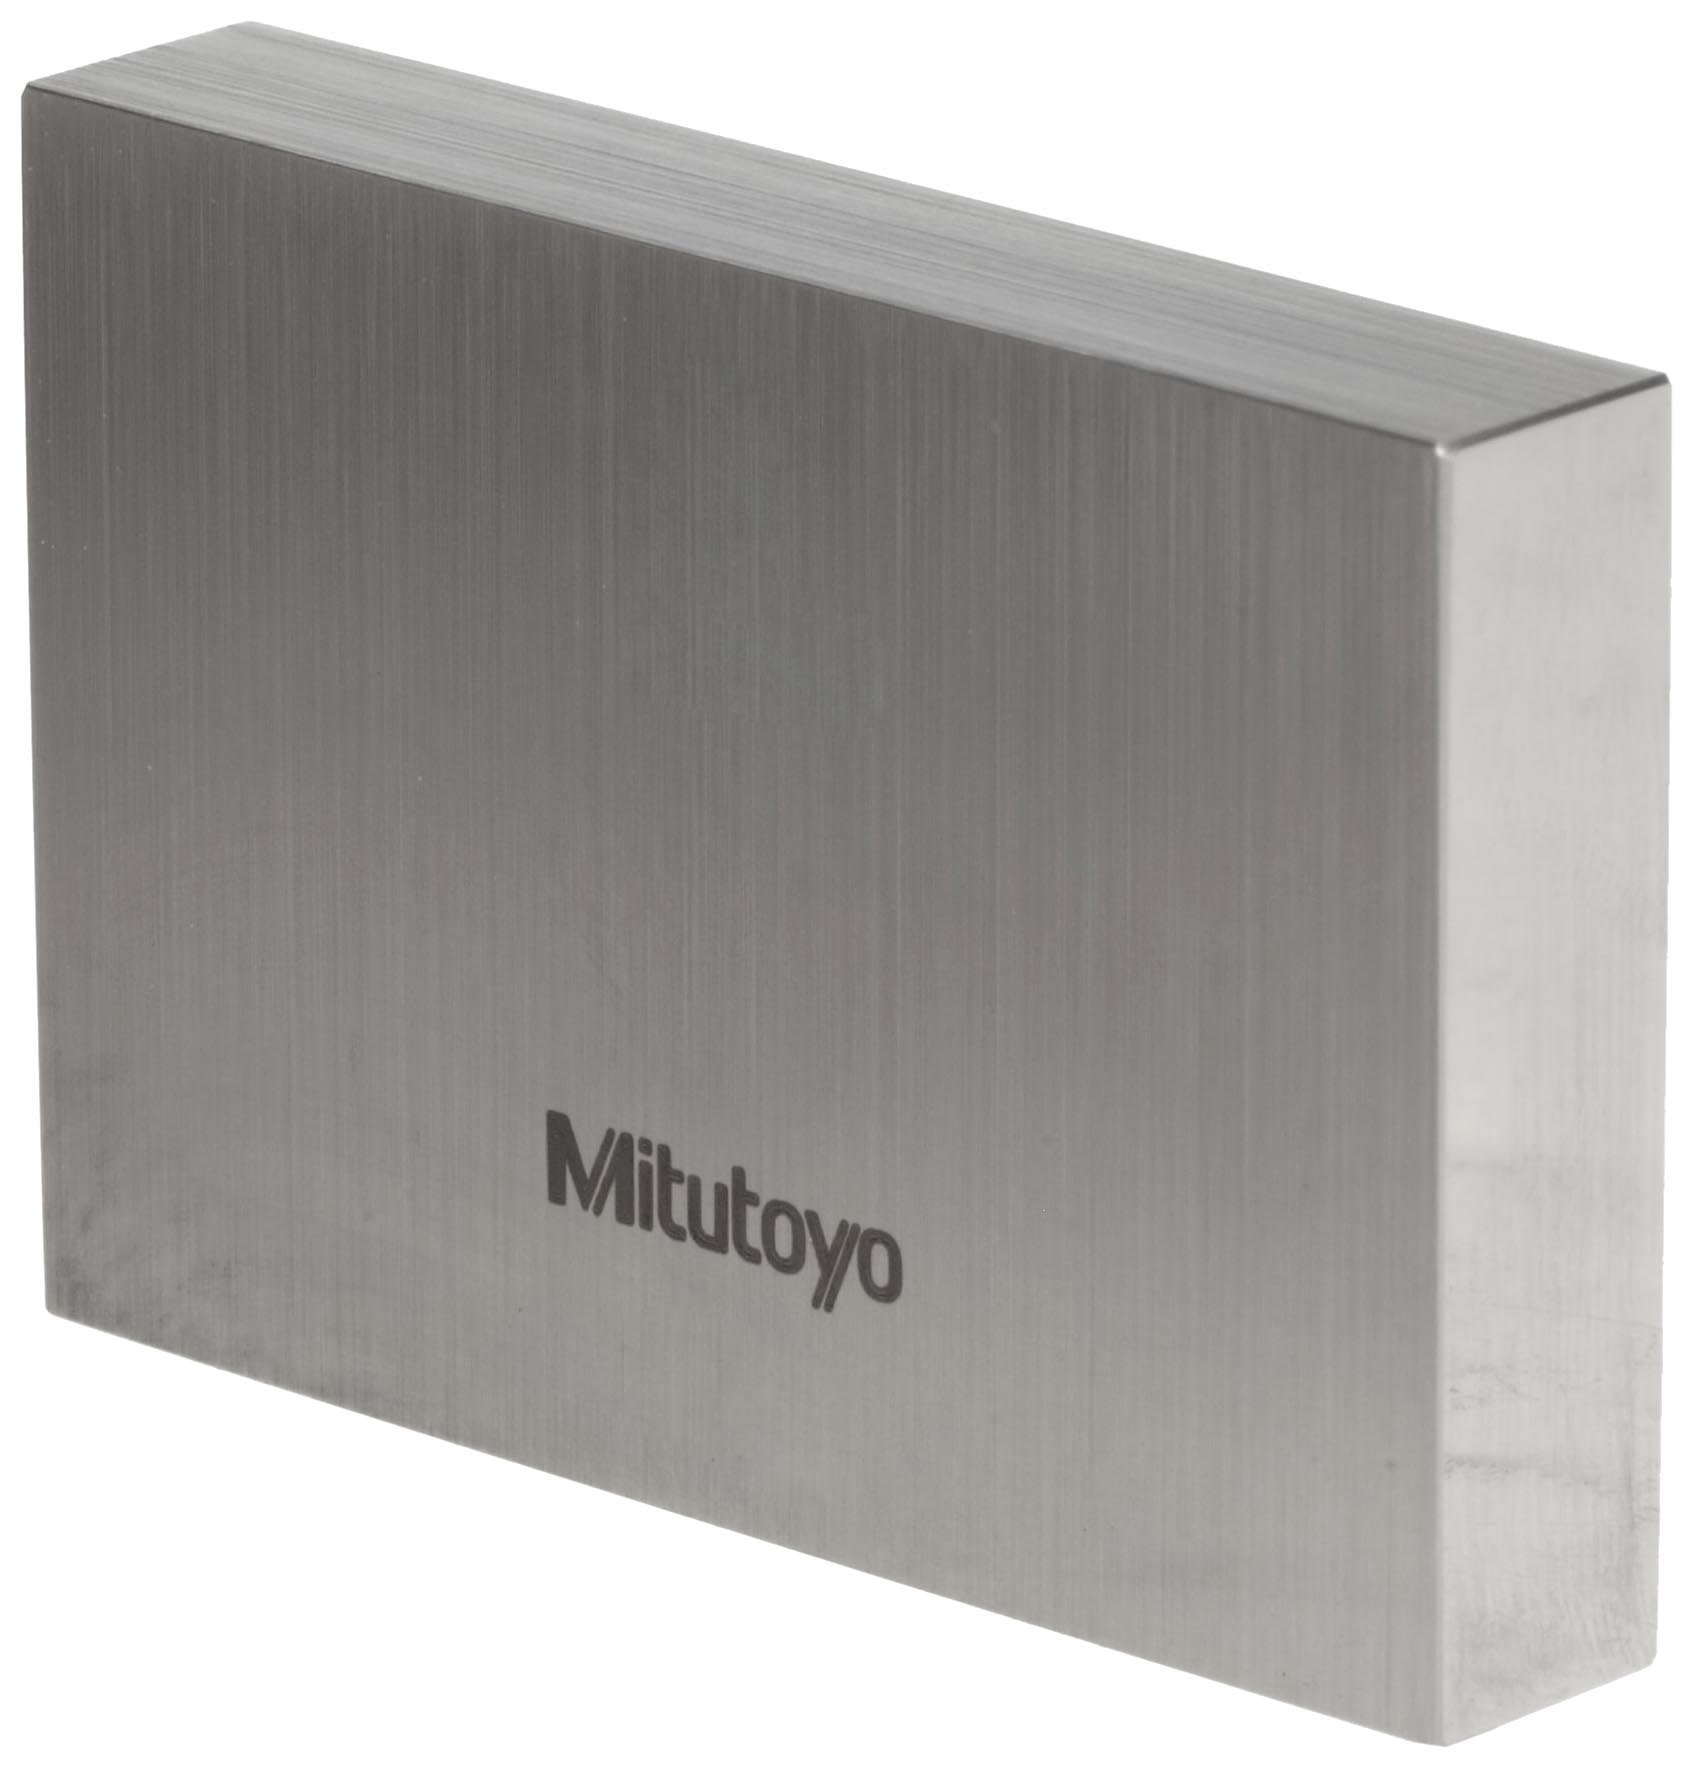 Mitutoyo Steel Rectangular Gage Block, ASME Grade AS-1, 0.75'' Length